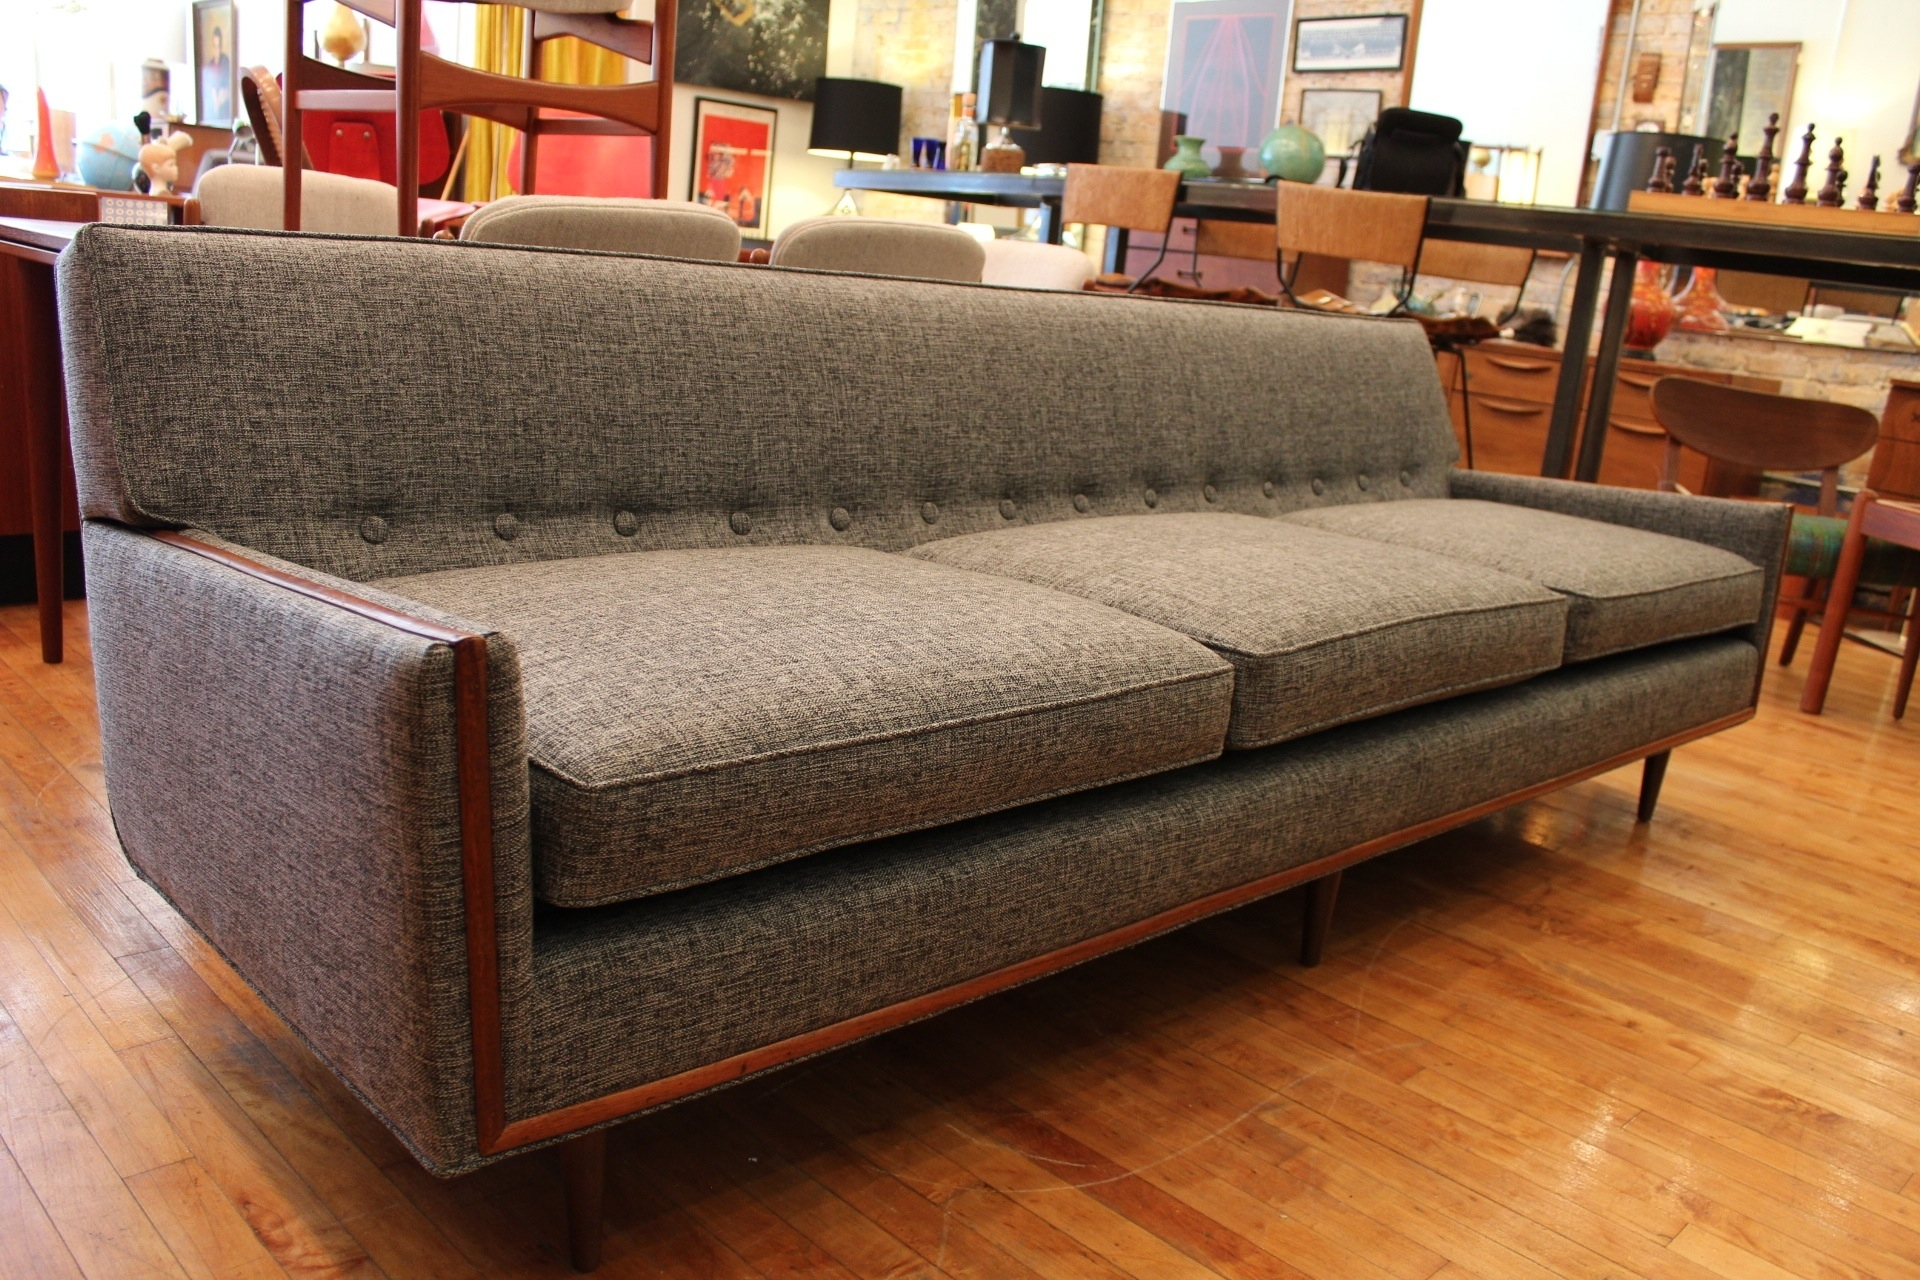 Sofa : Appealing Vintage Mid Century Modern Sofa Furniture Sectional With Vintage Sectional Sofas (Image 6 of 10)